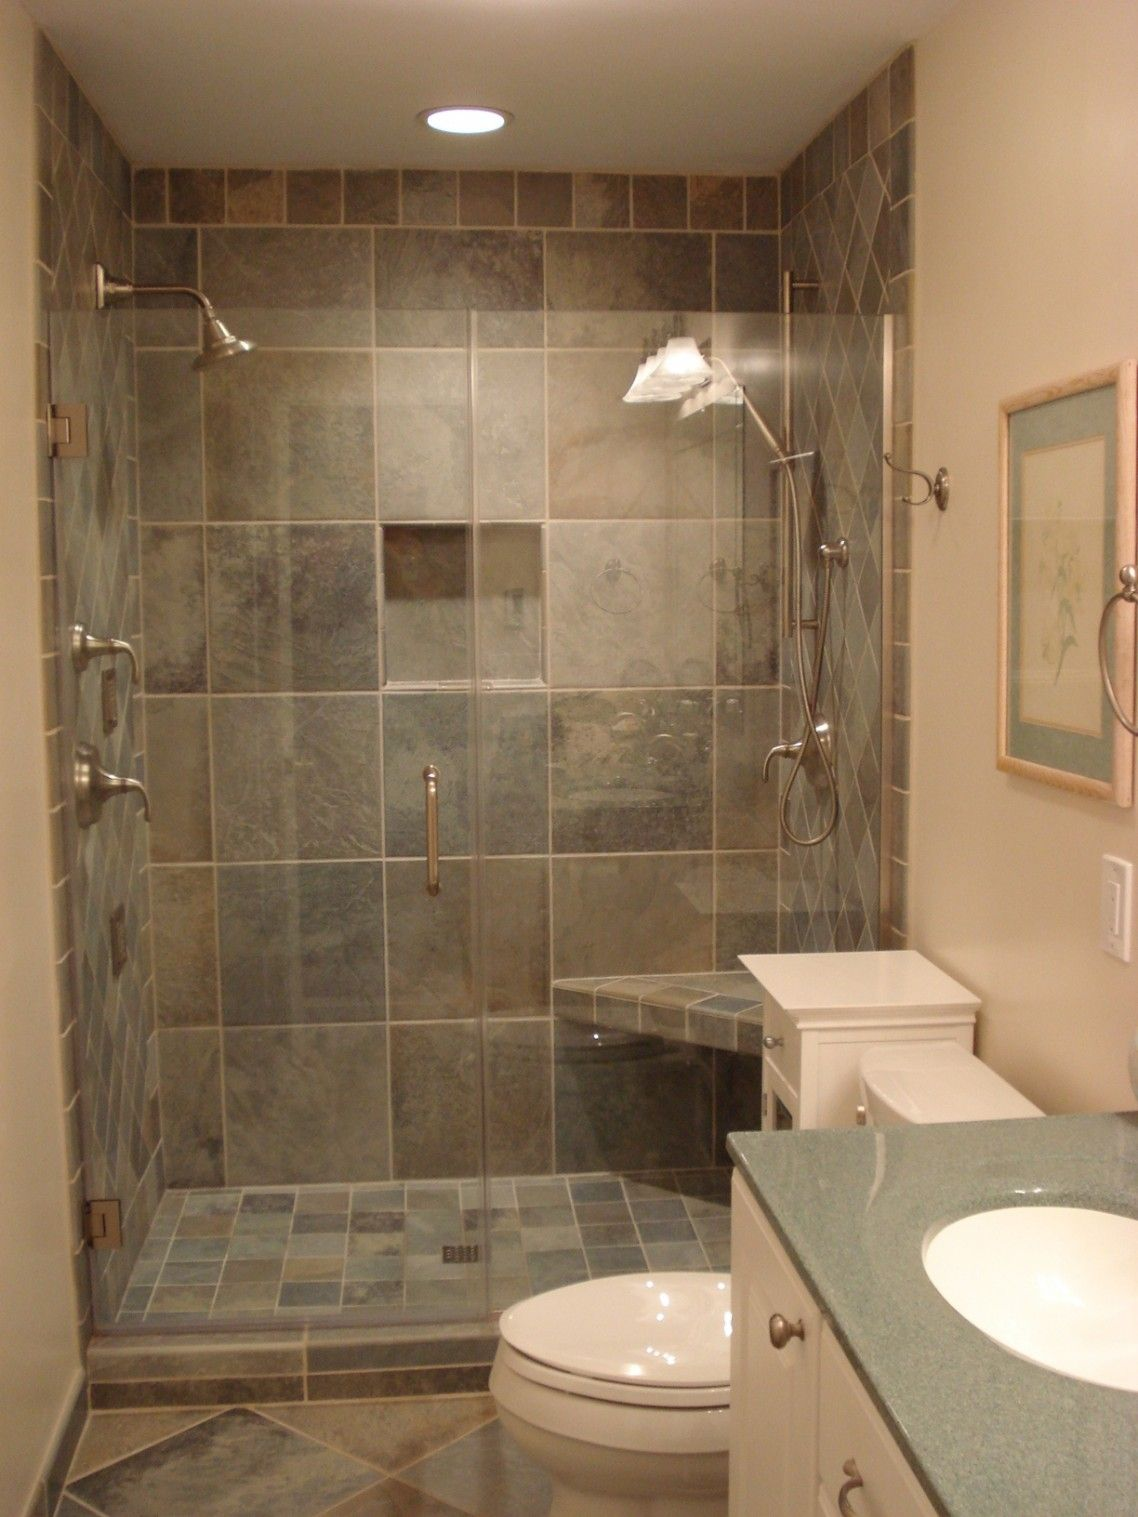 How much does it cost to do a bathroom renovation - Bathroom Remodels With Showers Shower Slate Tiles Wall